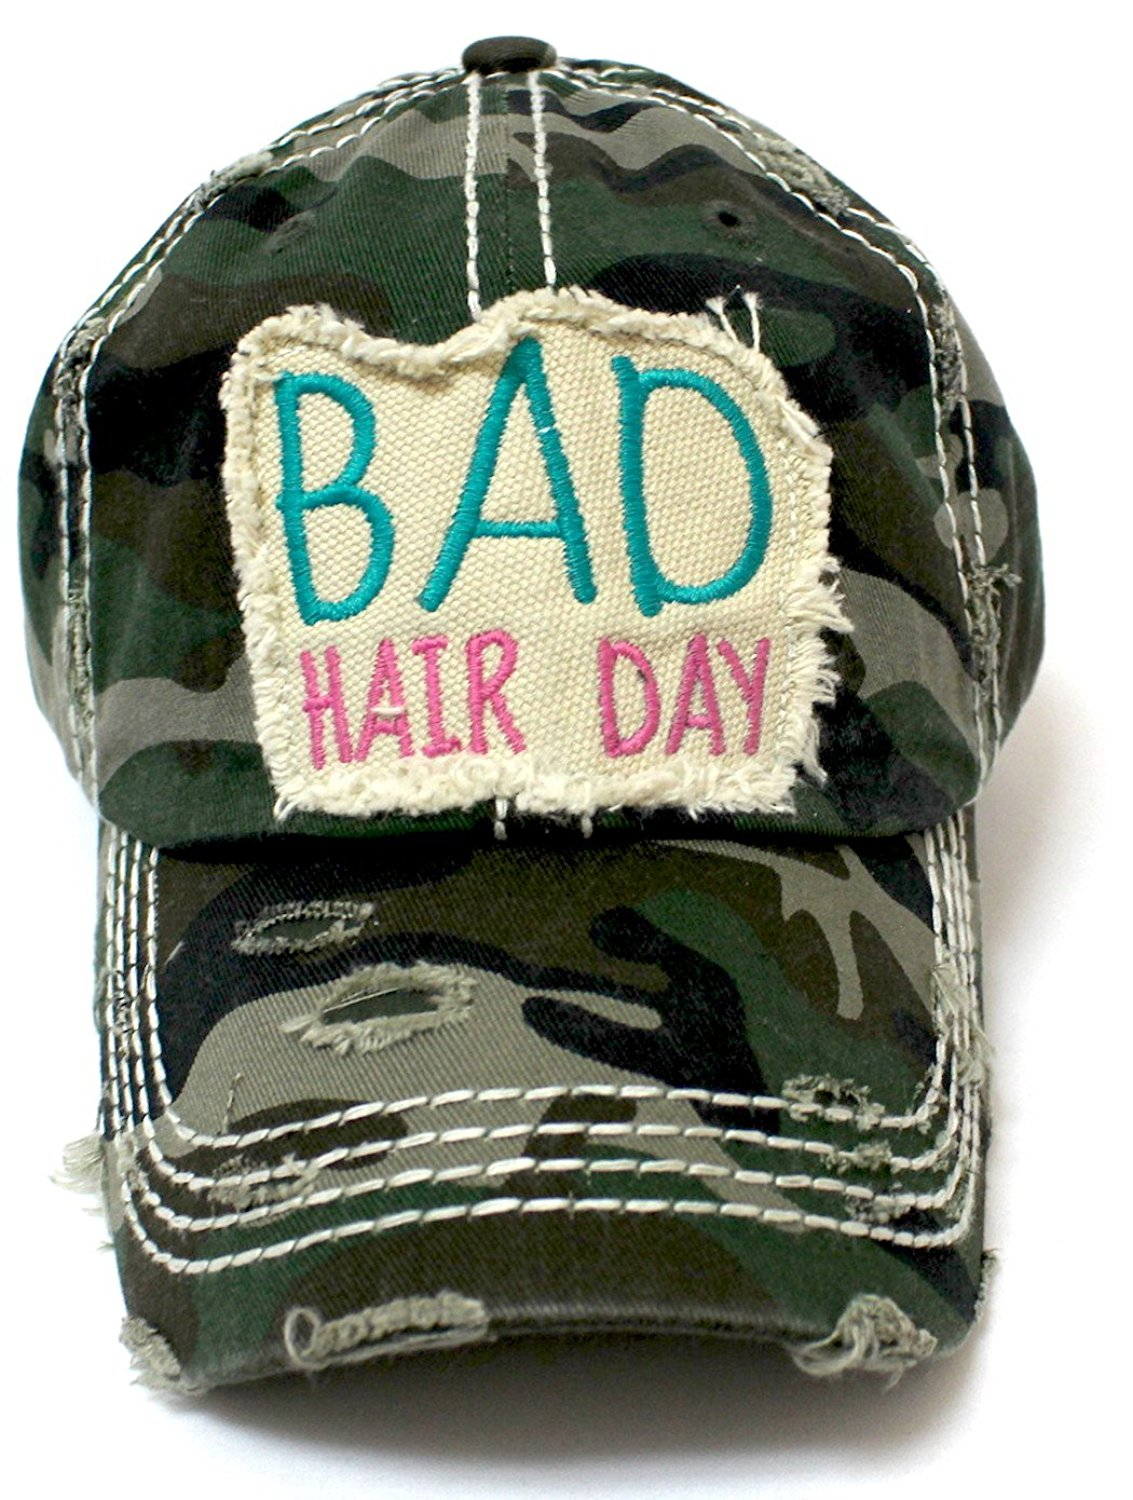 NEW!! Army Camouflage Bad Hair Day Vintage Patch Hat - Caps 'N Vintage